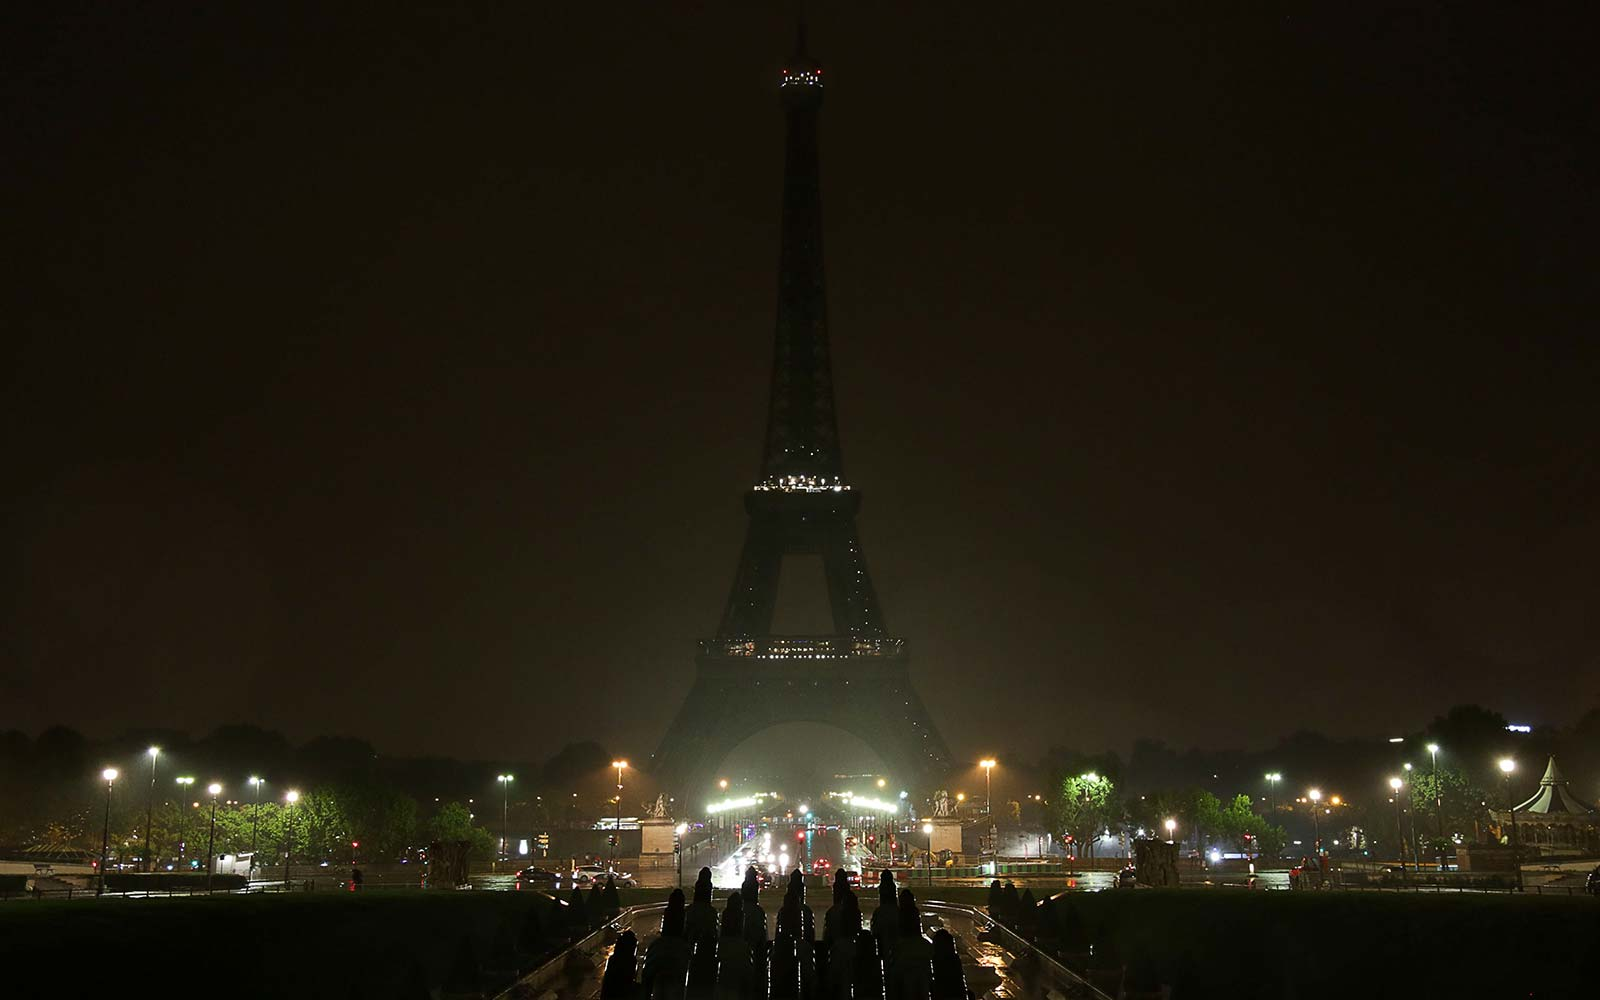 Paris France Eiffel Tower shuts off lights in memory of Las Vegas shooting victims